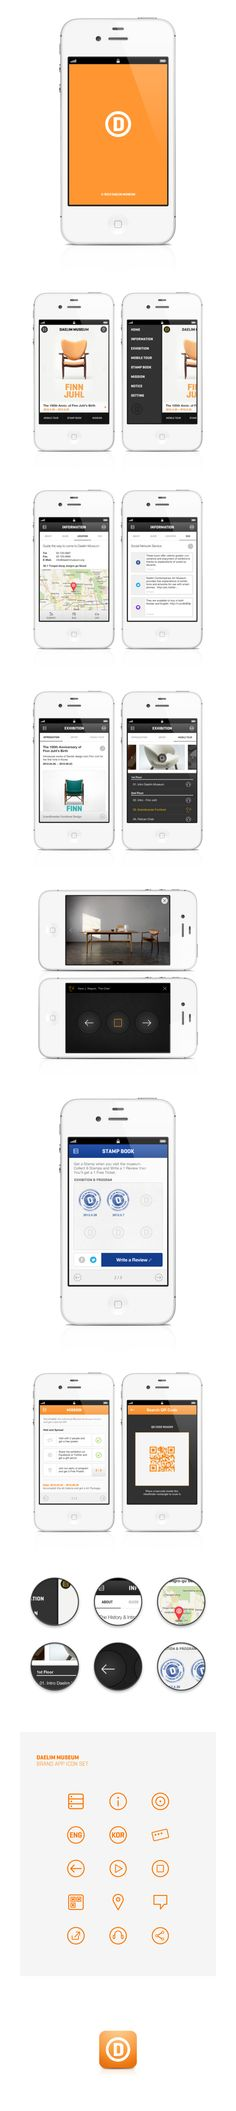 Dig this comprehensive museum app, nice gaming elements and clean design